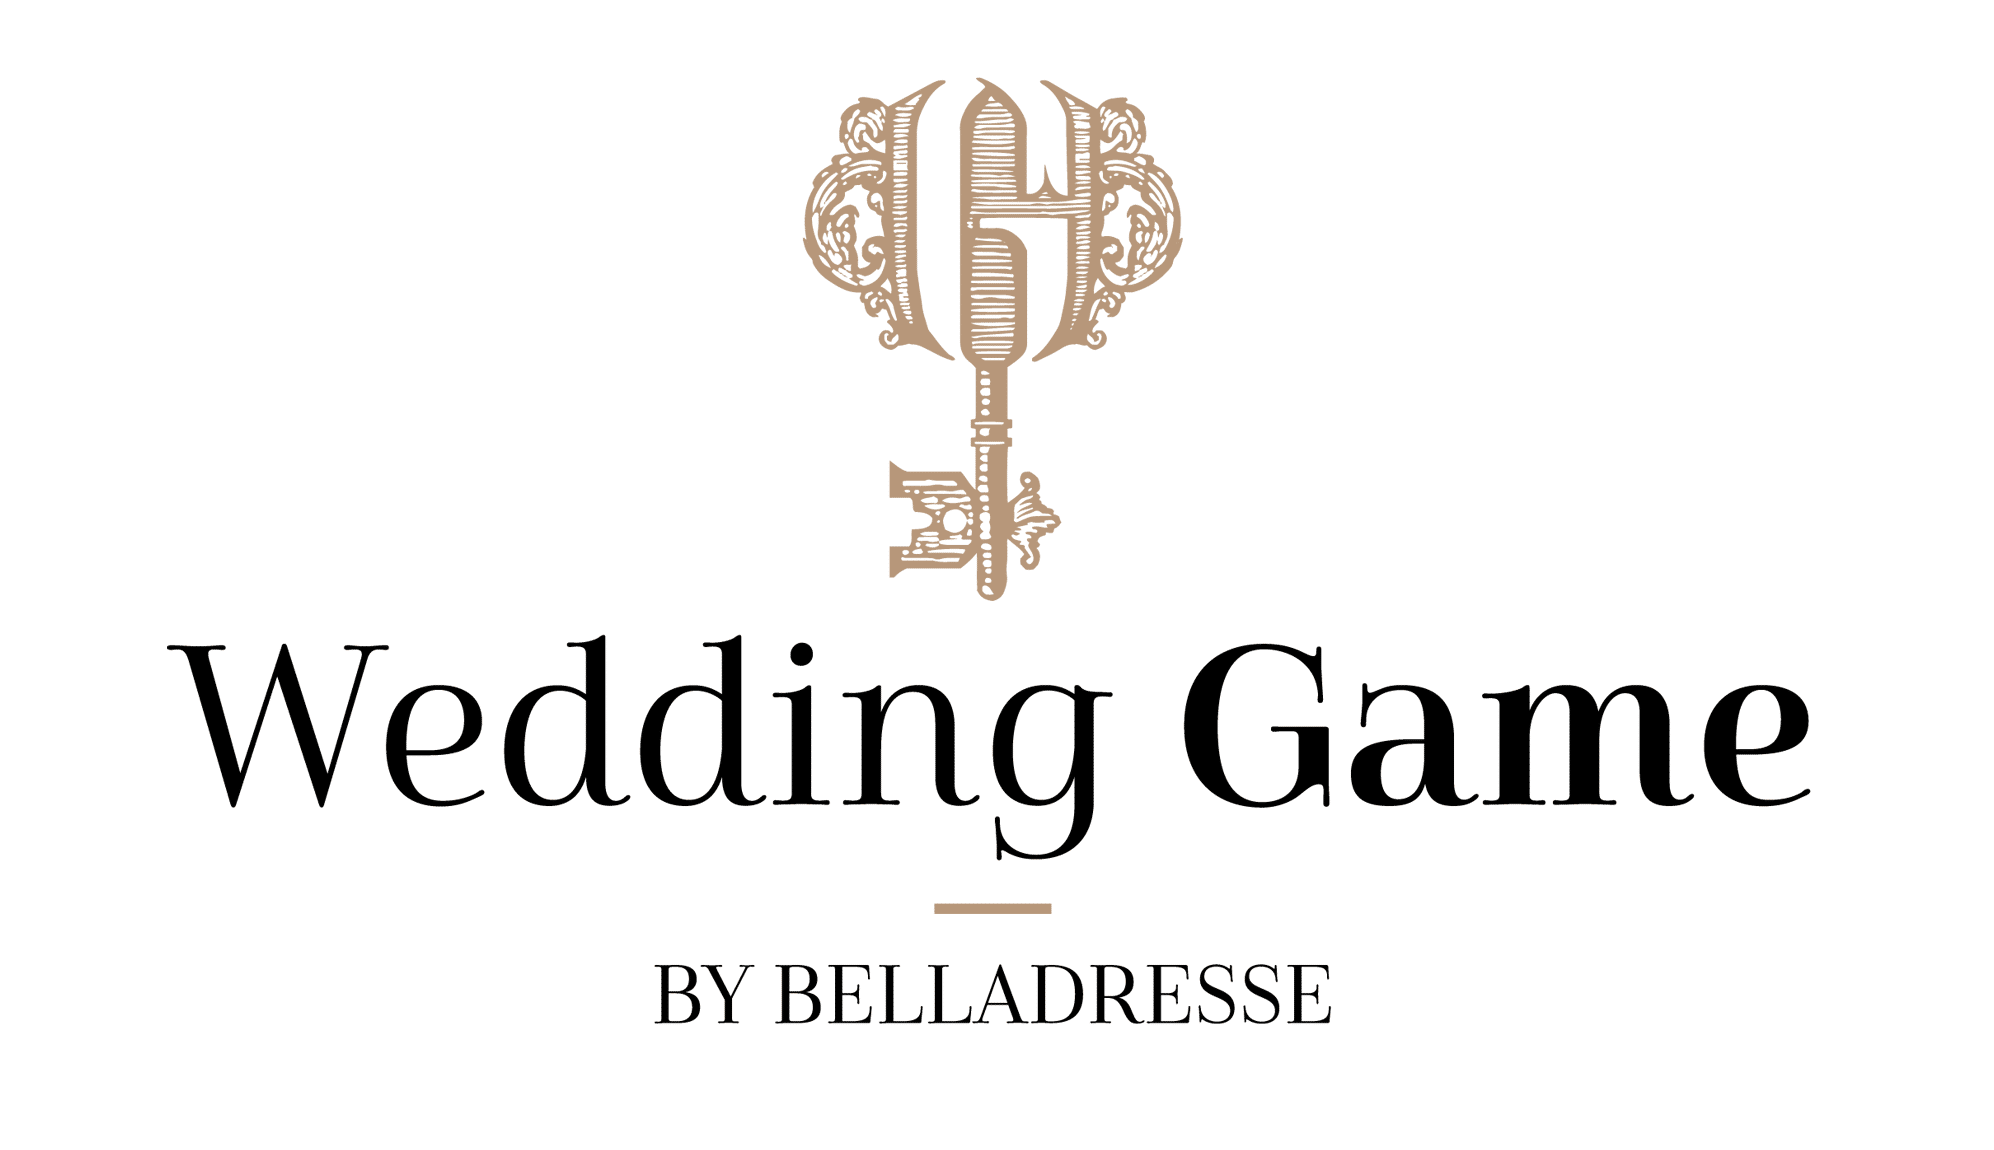 weddinggame